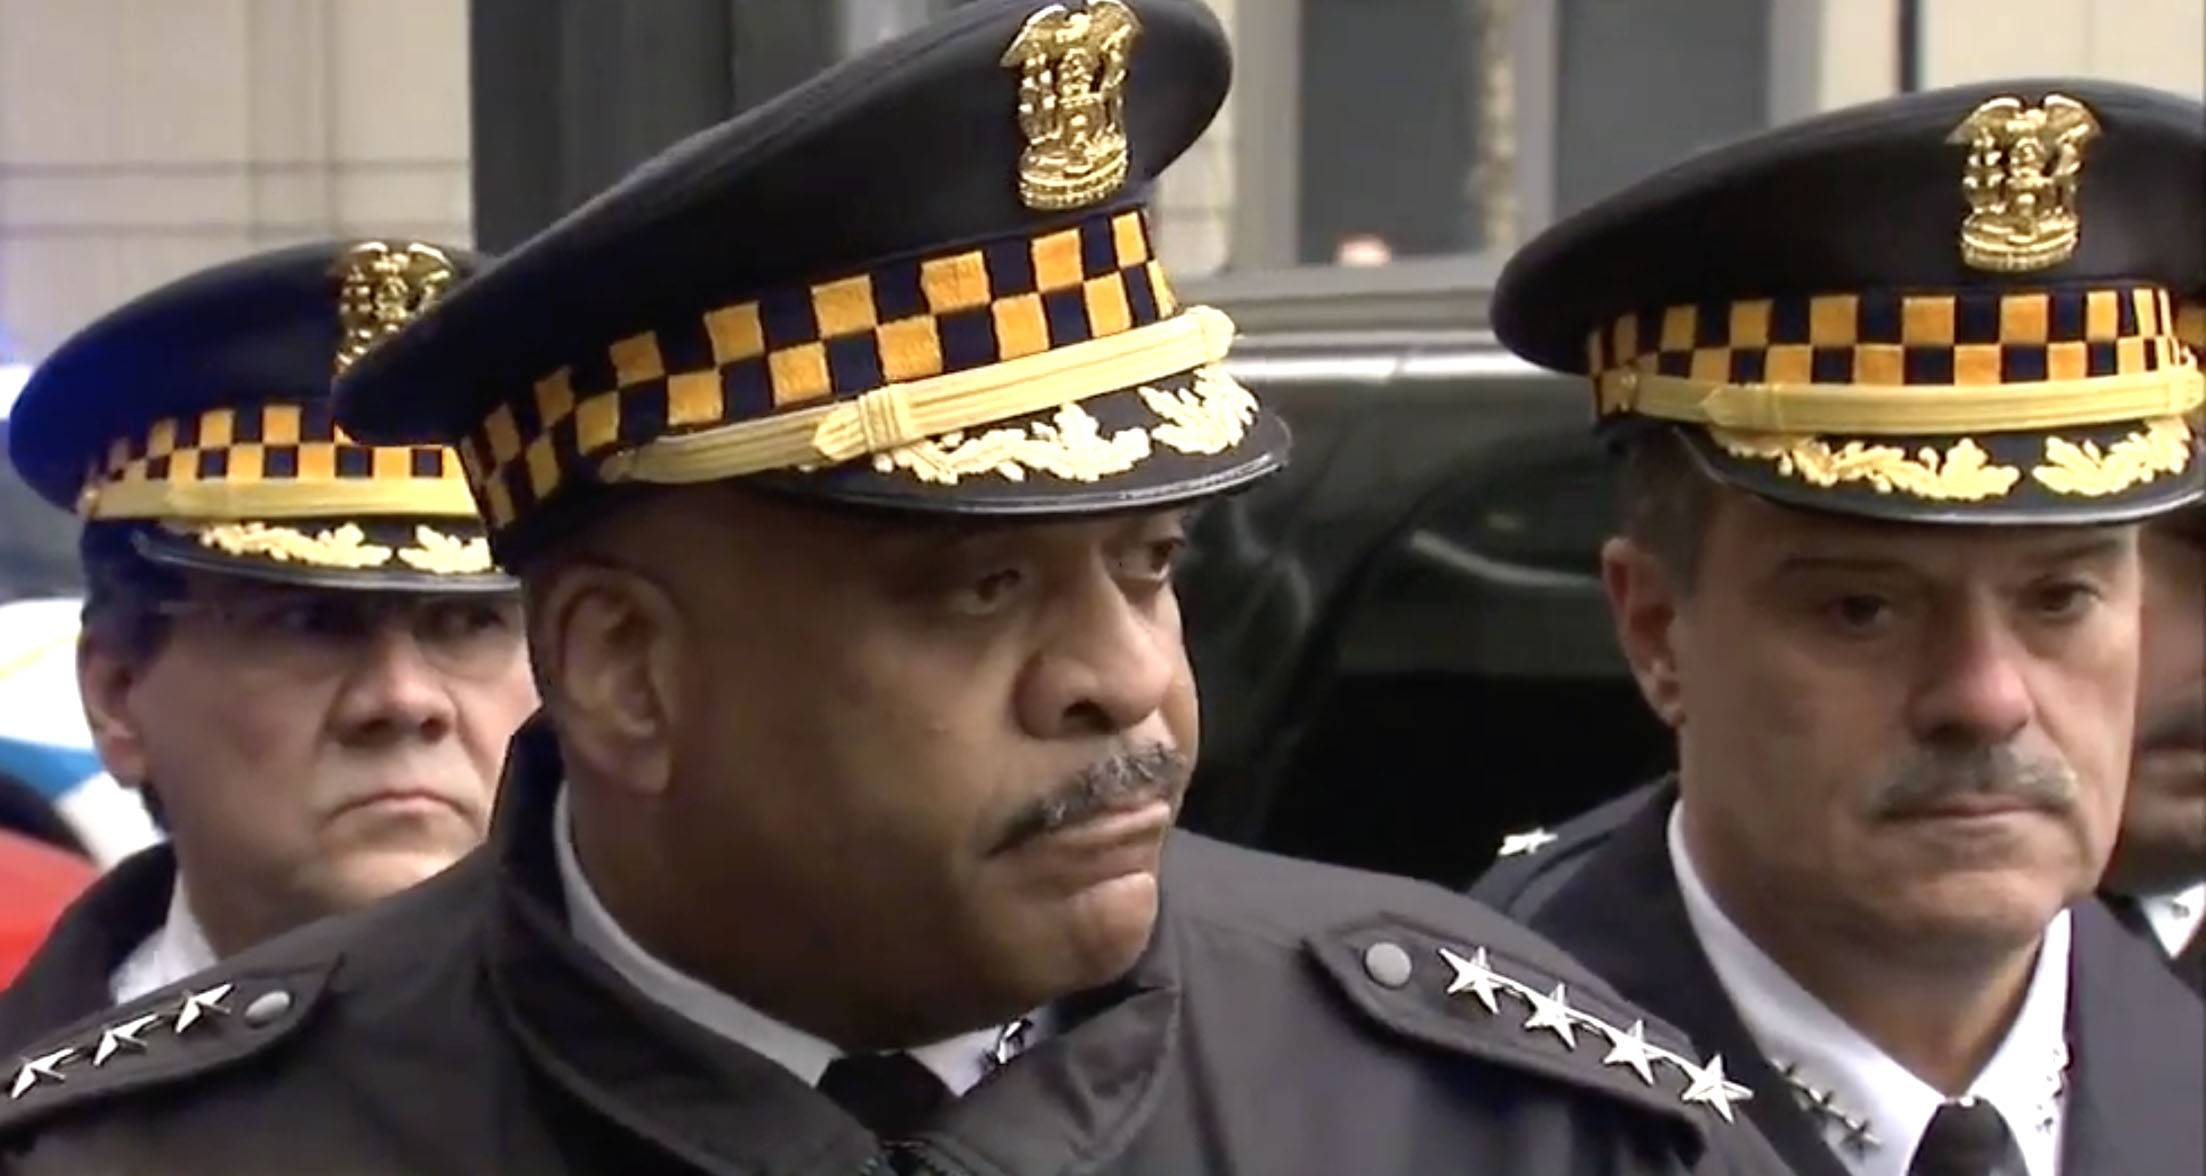 COURTESY OF ABC 7 CHICAGOAn emotional Chicago police Supt. Eddie Johnson informs members of the media that Cmdr. Paul R. Bauer was shot and killed while assisting a tactical team at a state government office building in downtown Chicago.